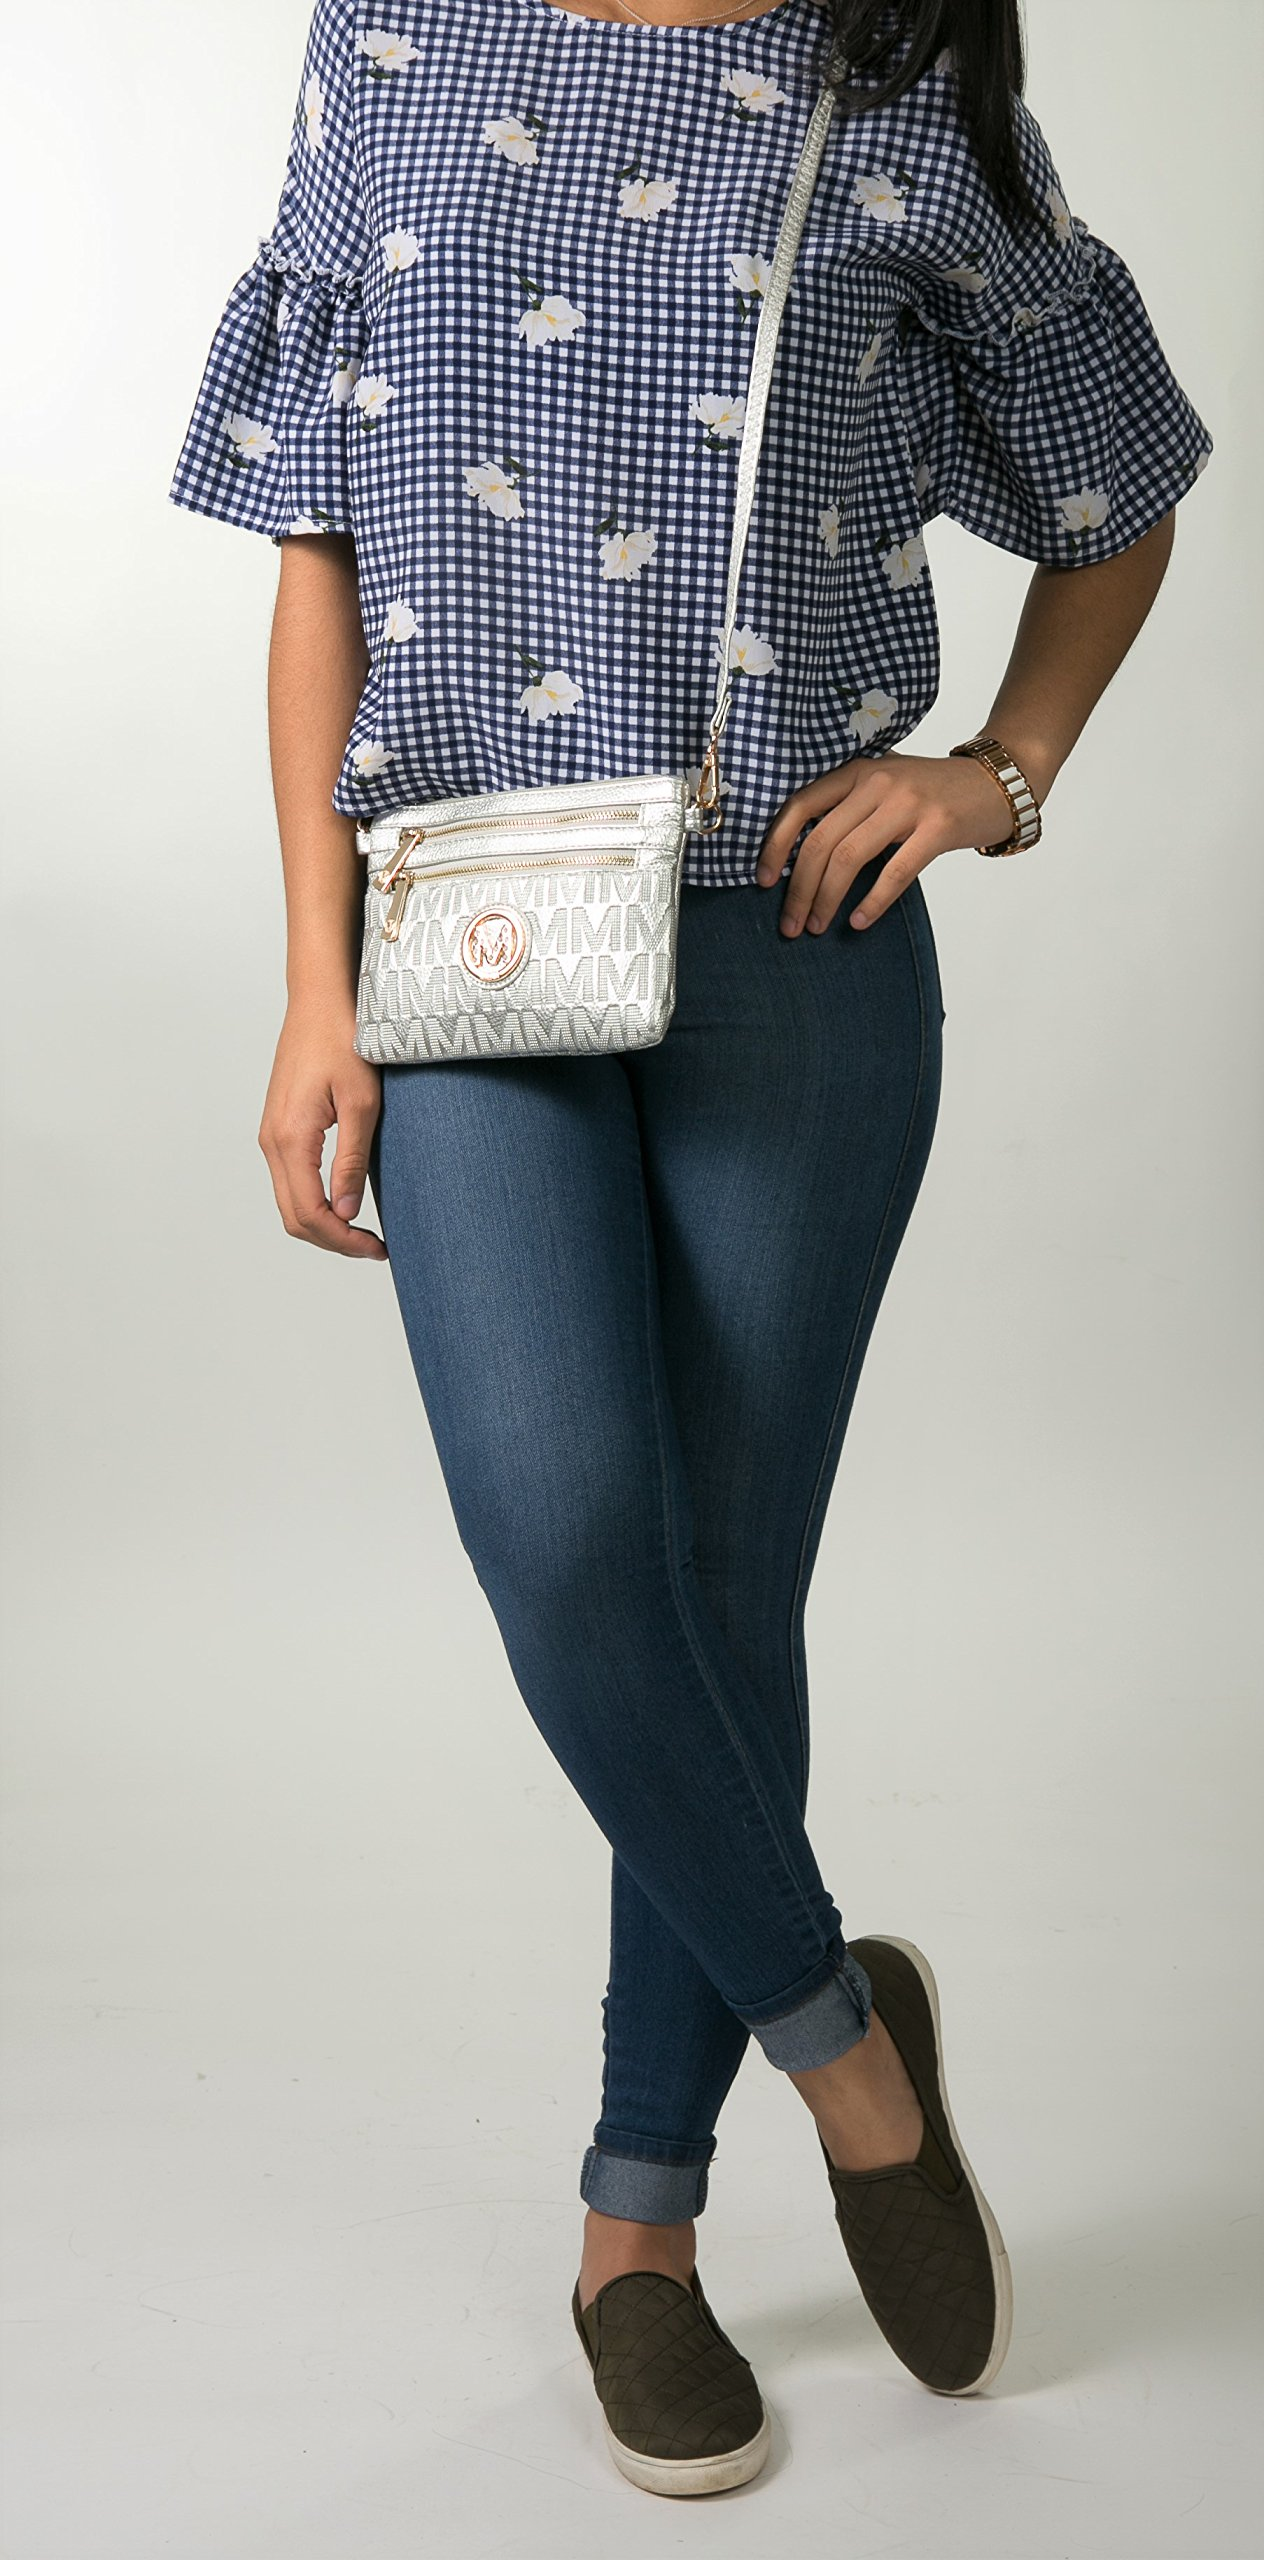 Wristlet | 2-in-1 Crossbody Bags for Women | MKF Collection Roonie Milan Signature Design by MKF Collection (Image #3)